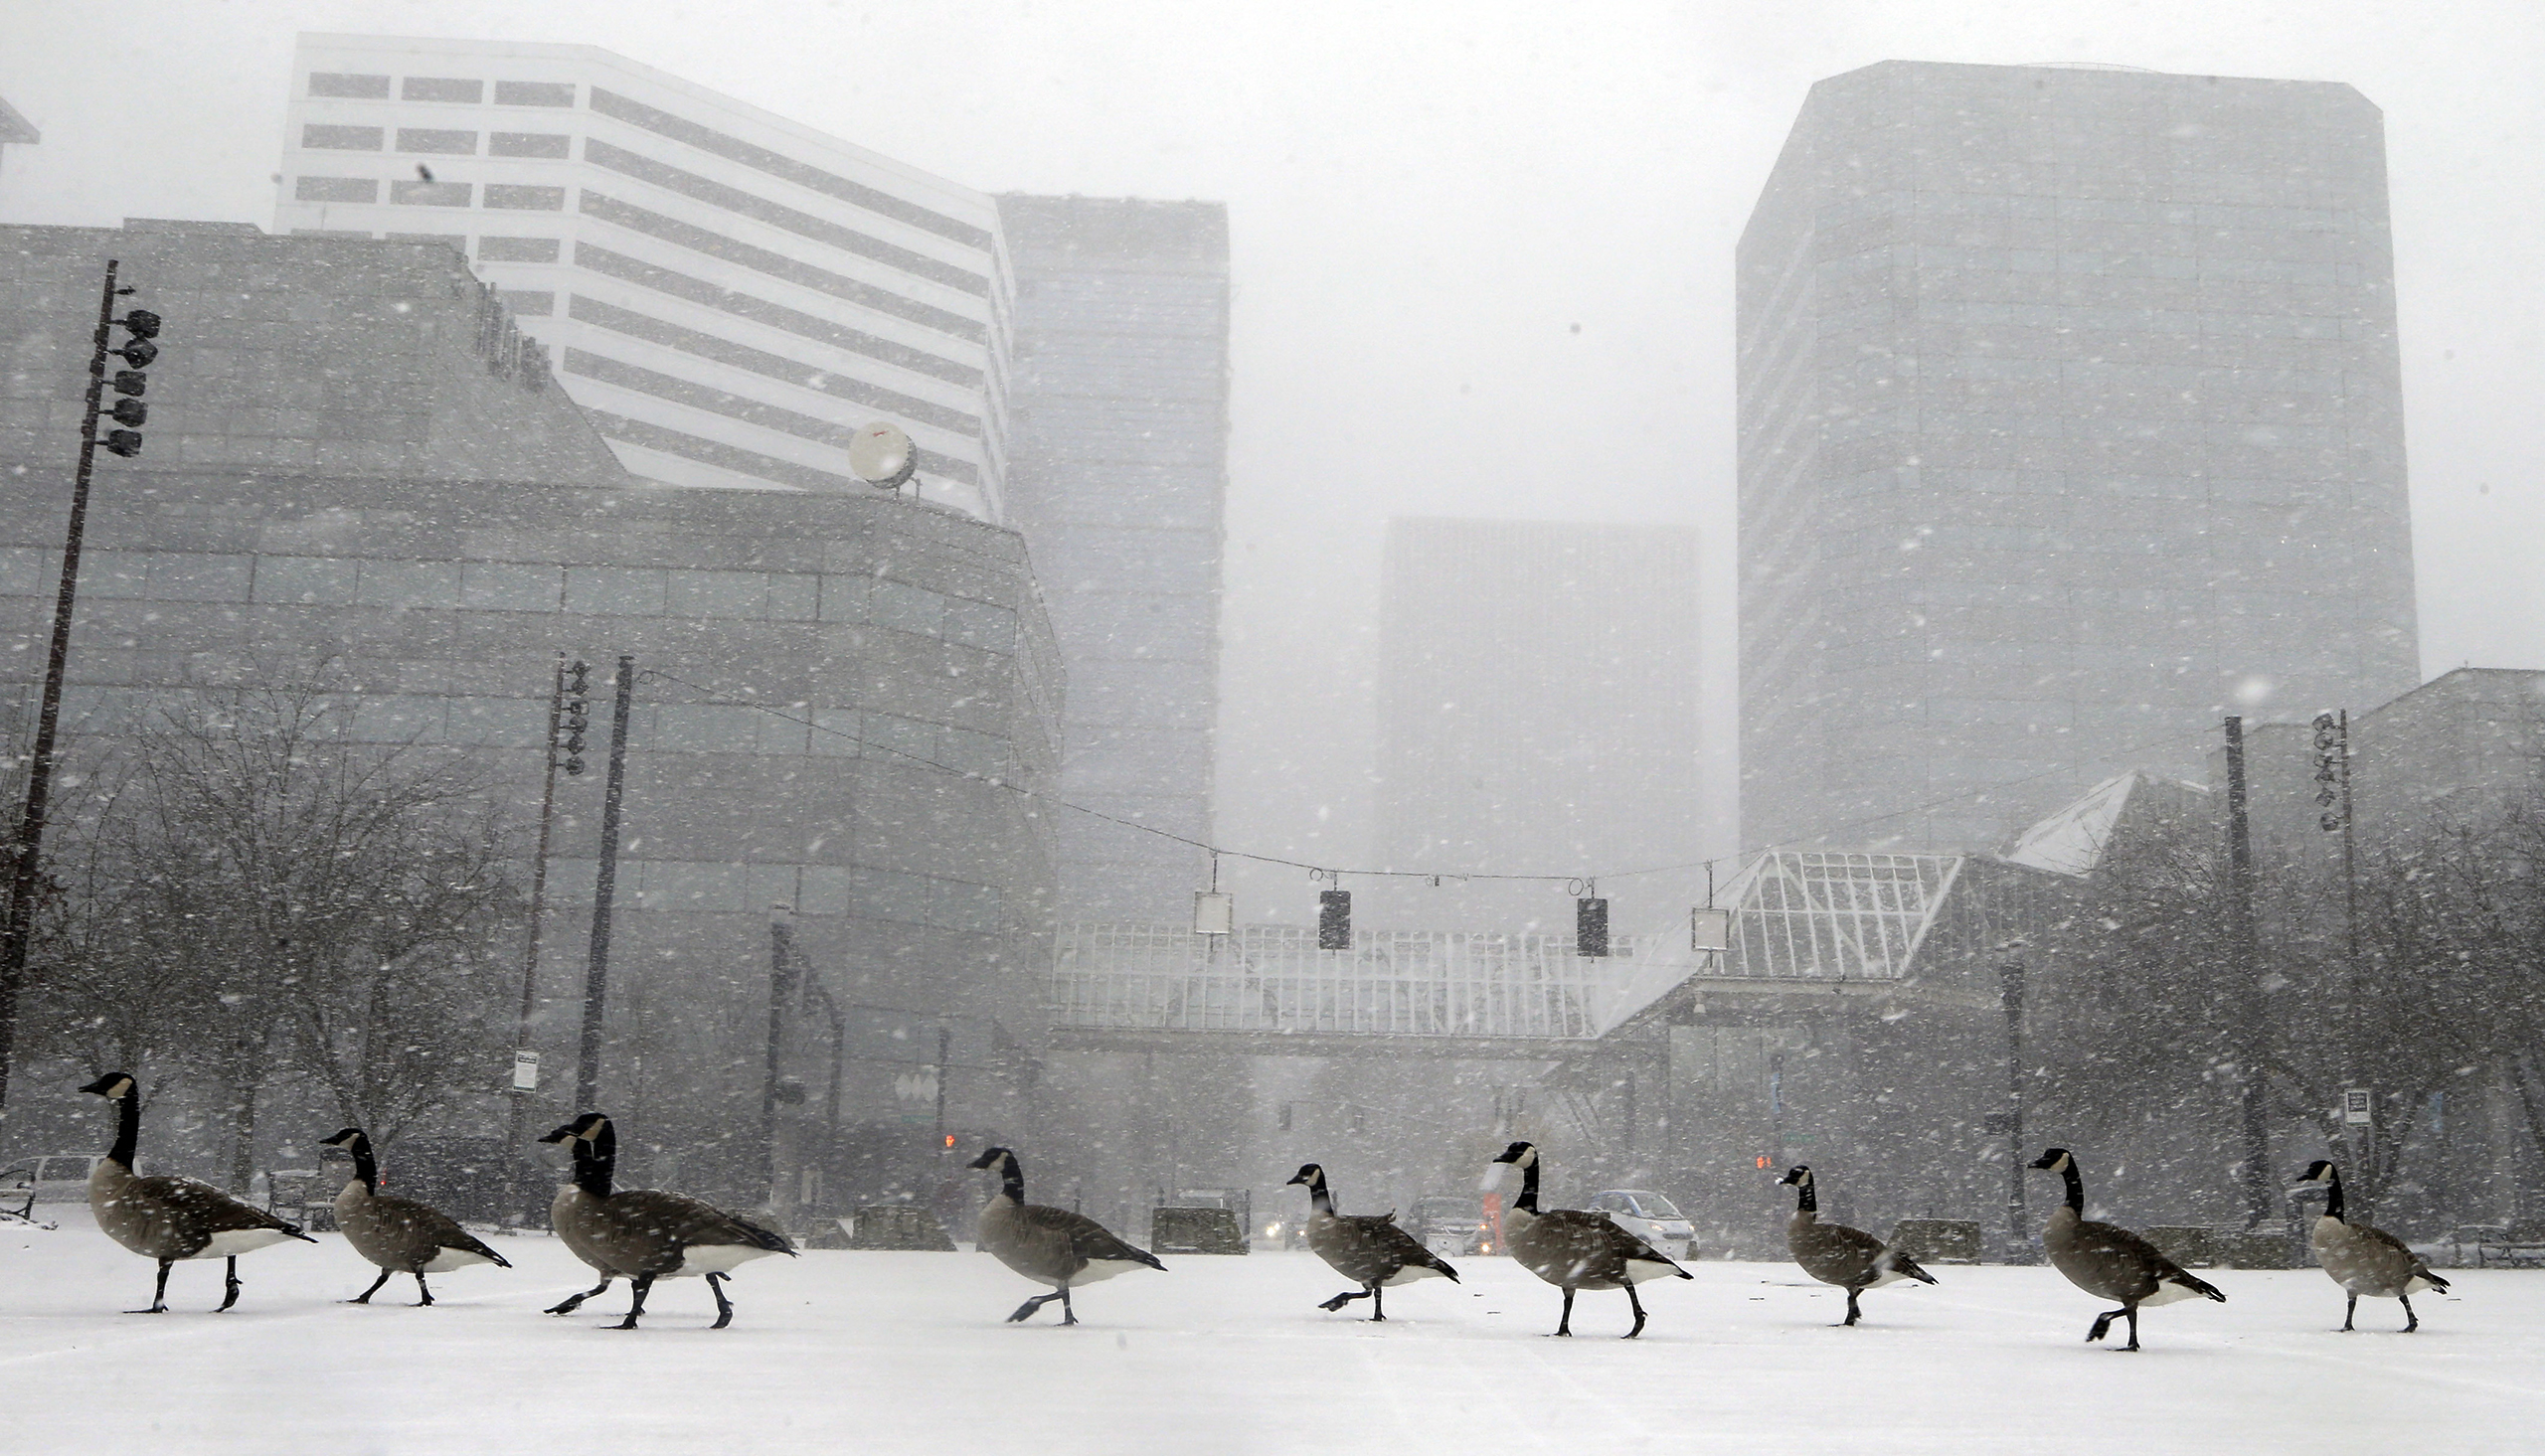 Geese walk along the snow covered waterfront park through heavy snowfall as the first winter storm of the season hits the area in Portland, Ore. on Dec. 8, 2016.